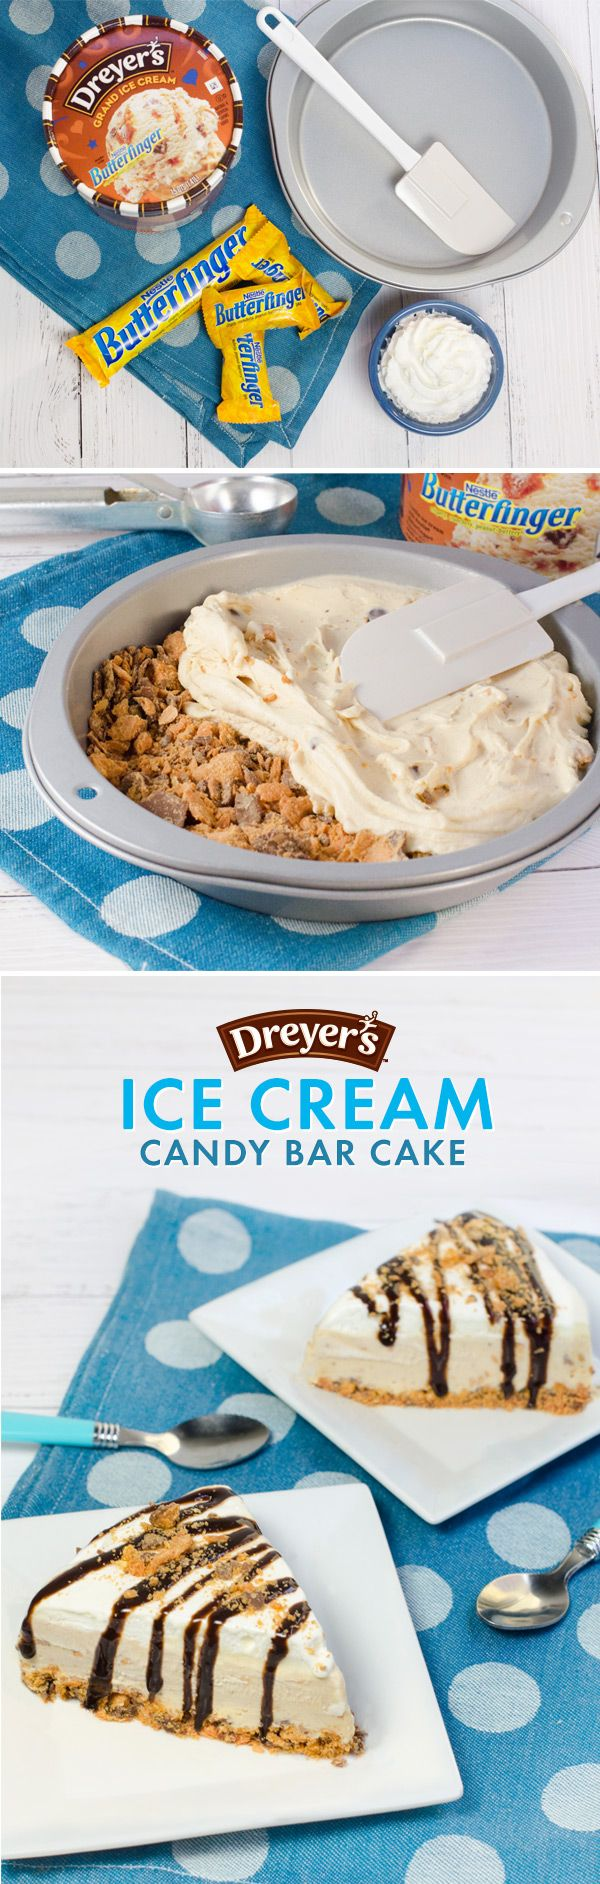 What do you do with leftover Nestlé Halloween candy? This! Chop up enough candy to cover the bottom of a cake pan, and top with layers of Dreyer's Nestlé Butterfinger® ice cream, whipped cream and chocolate drizzle. Then, sprinkle crushed candy over the top for the finishing touch on this cool, crunchy treat!